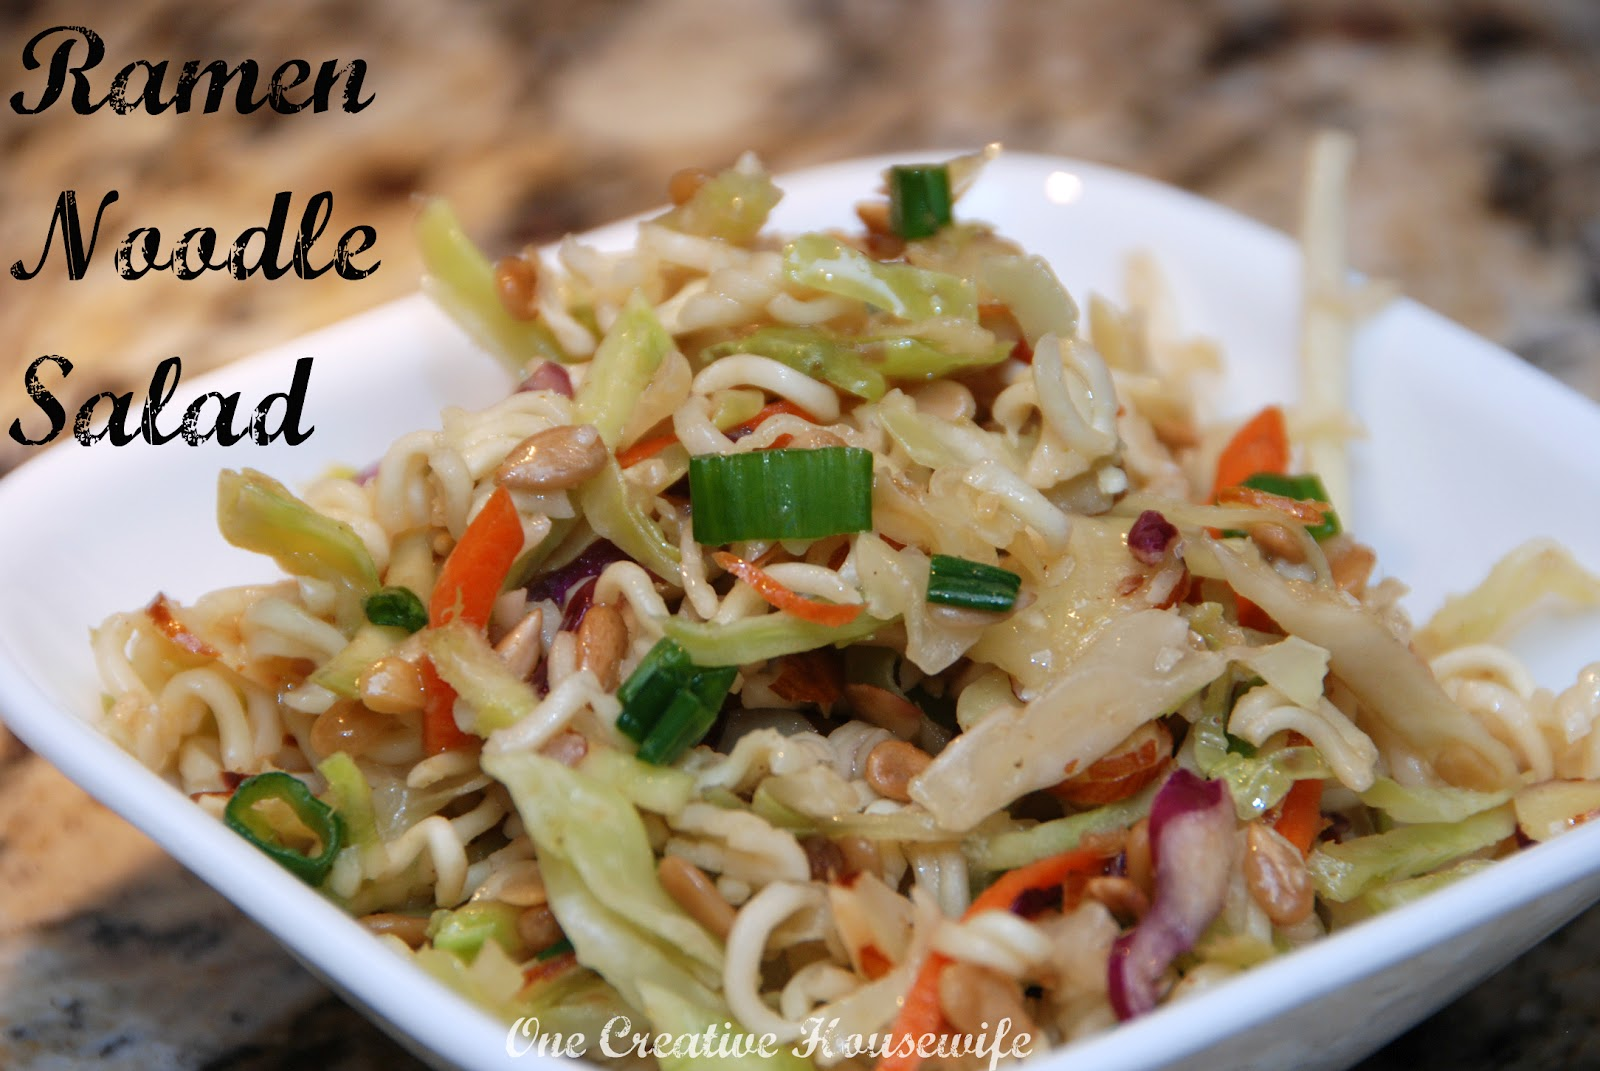 One Creative Housewife: Ramen Noodle Salad